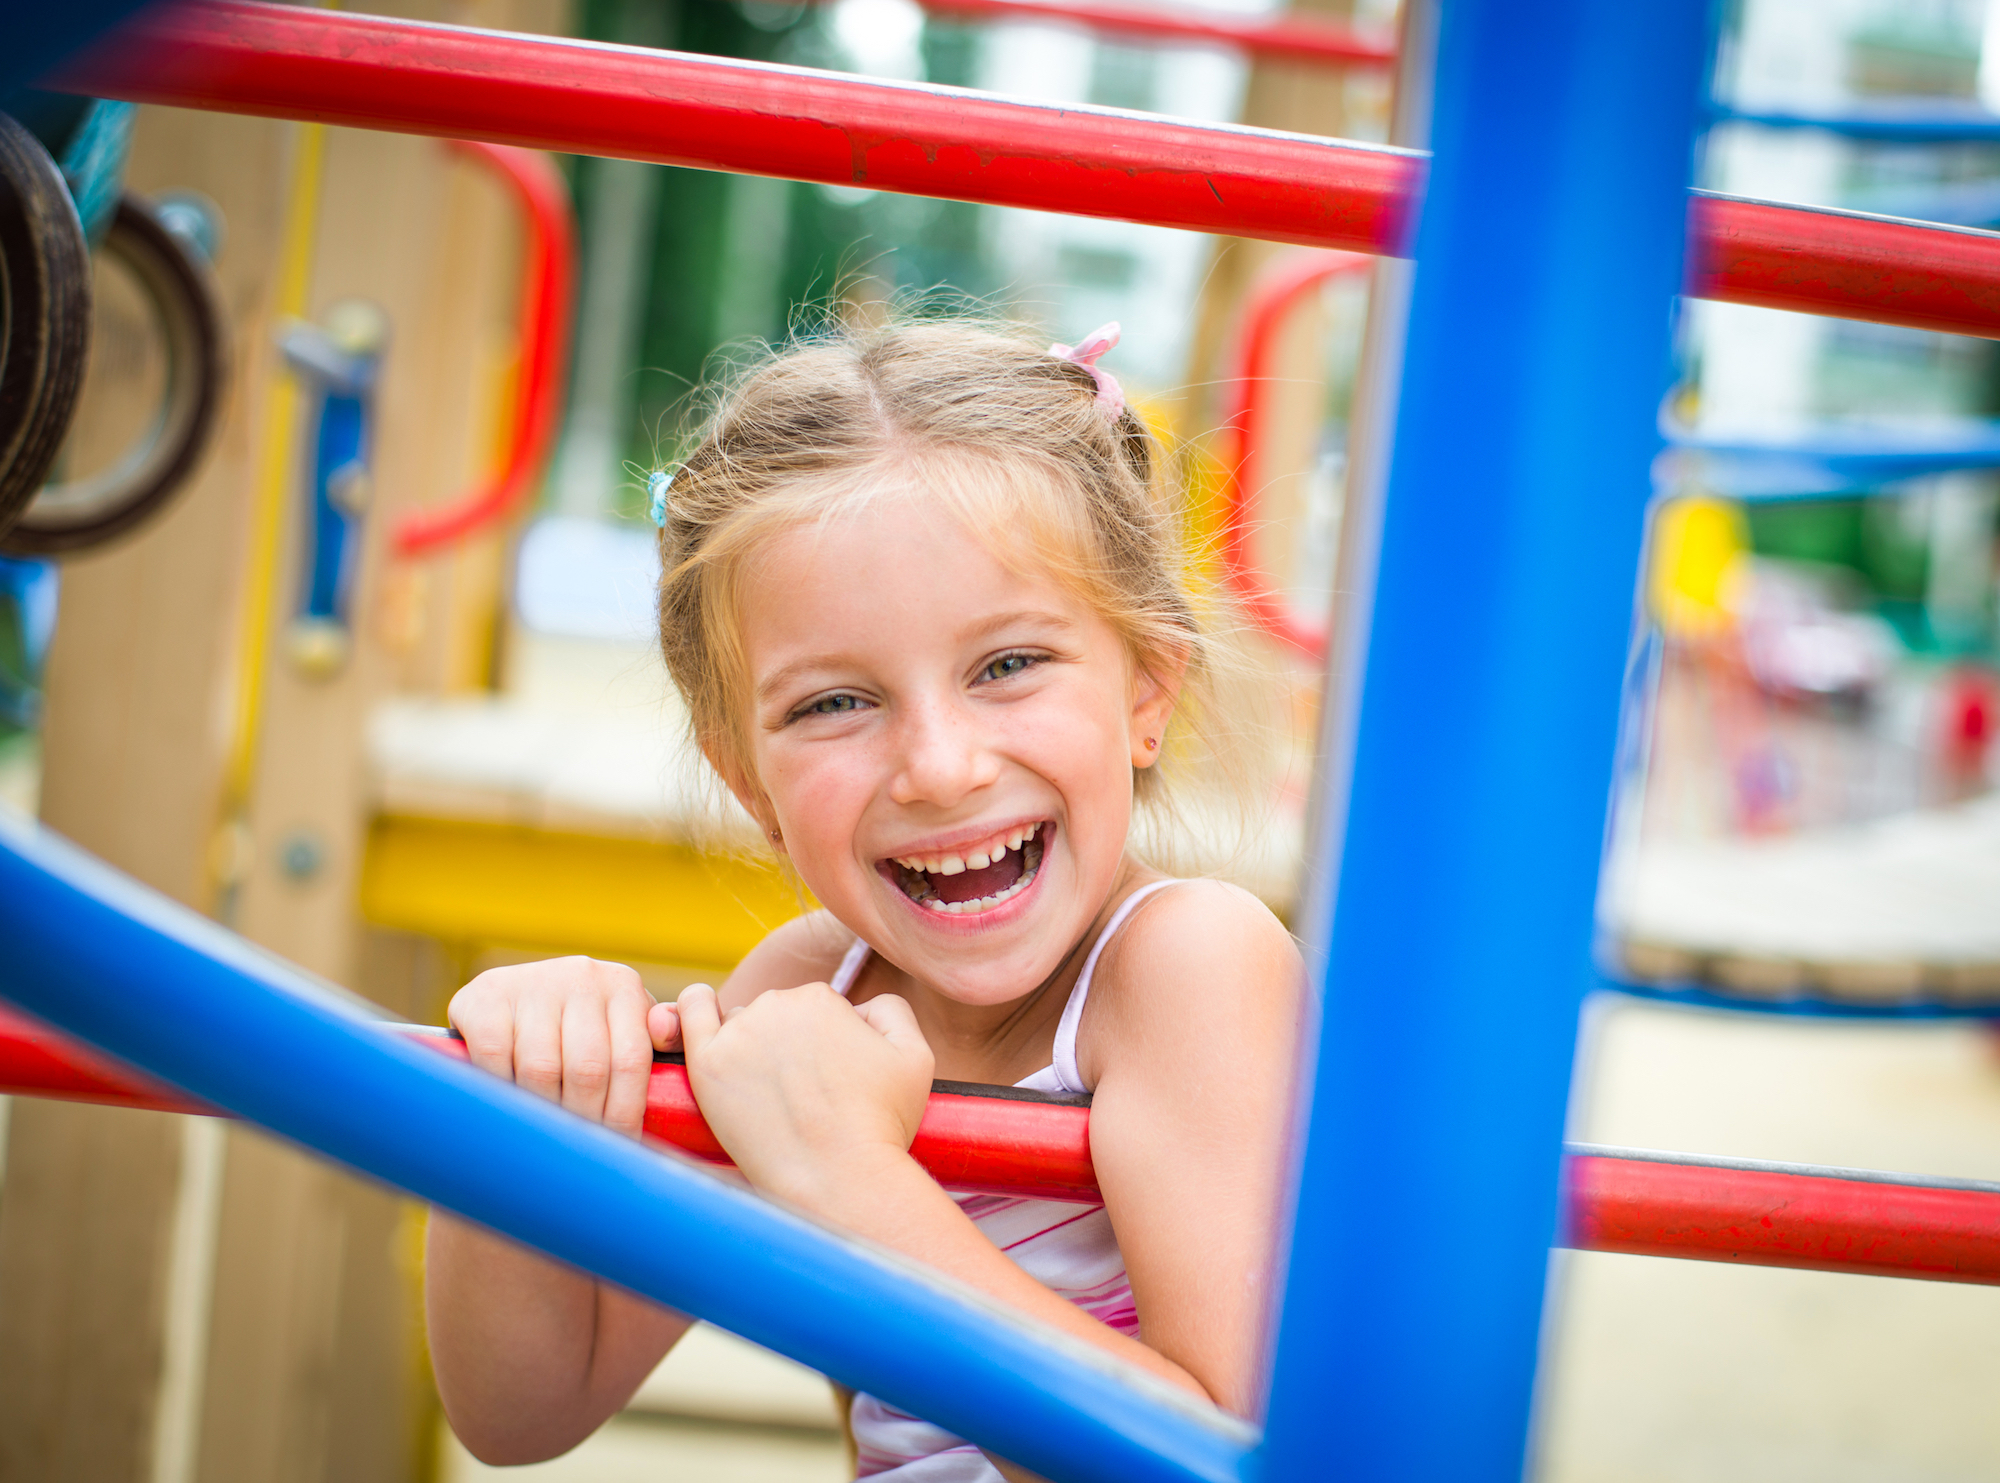 Little girl smiling on playground